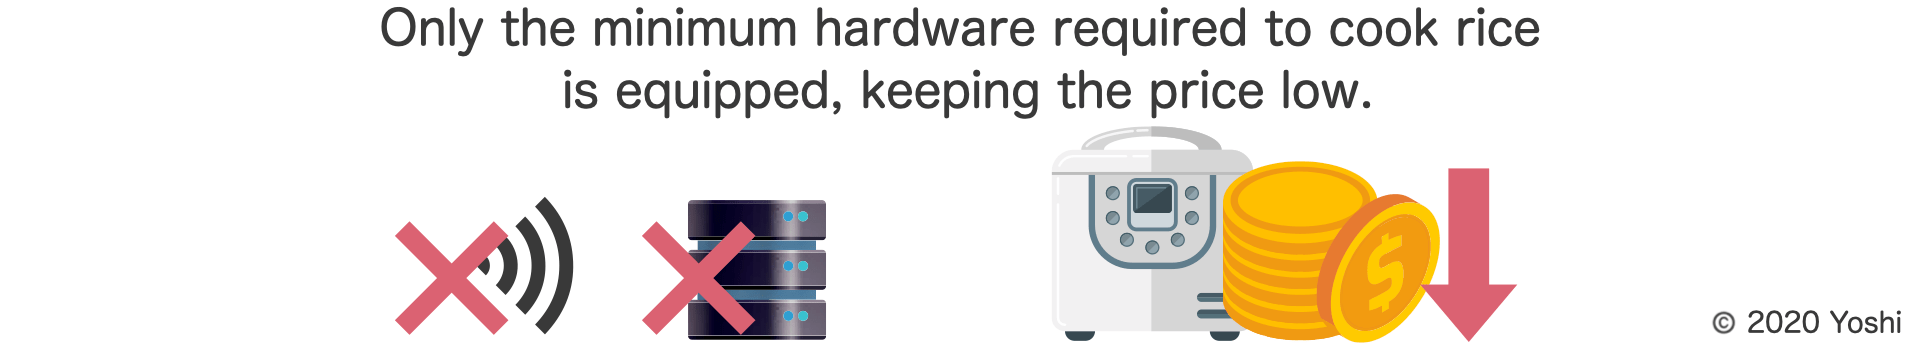 minimum hardware is equipped to keep price low